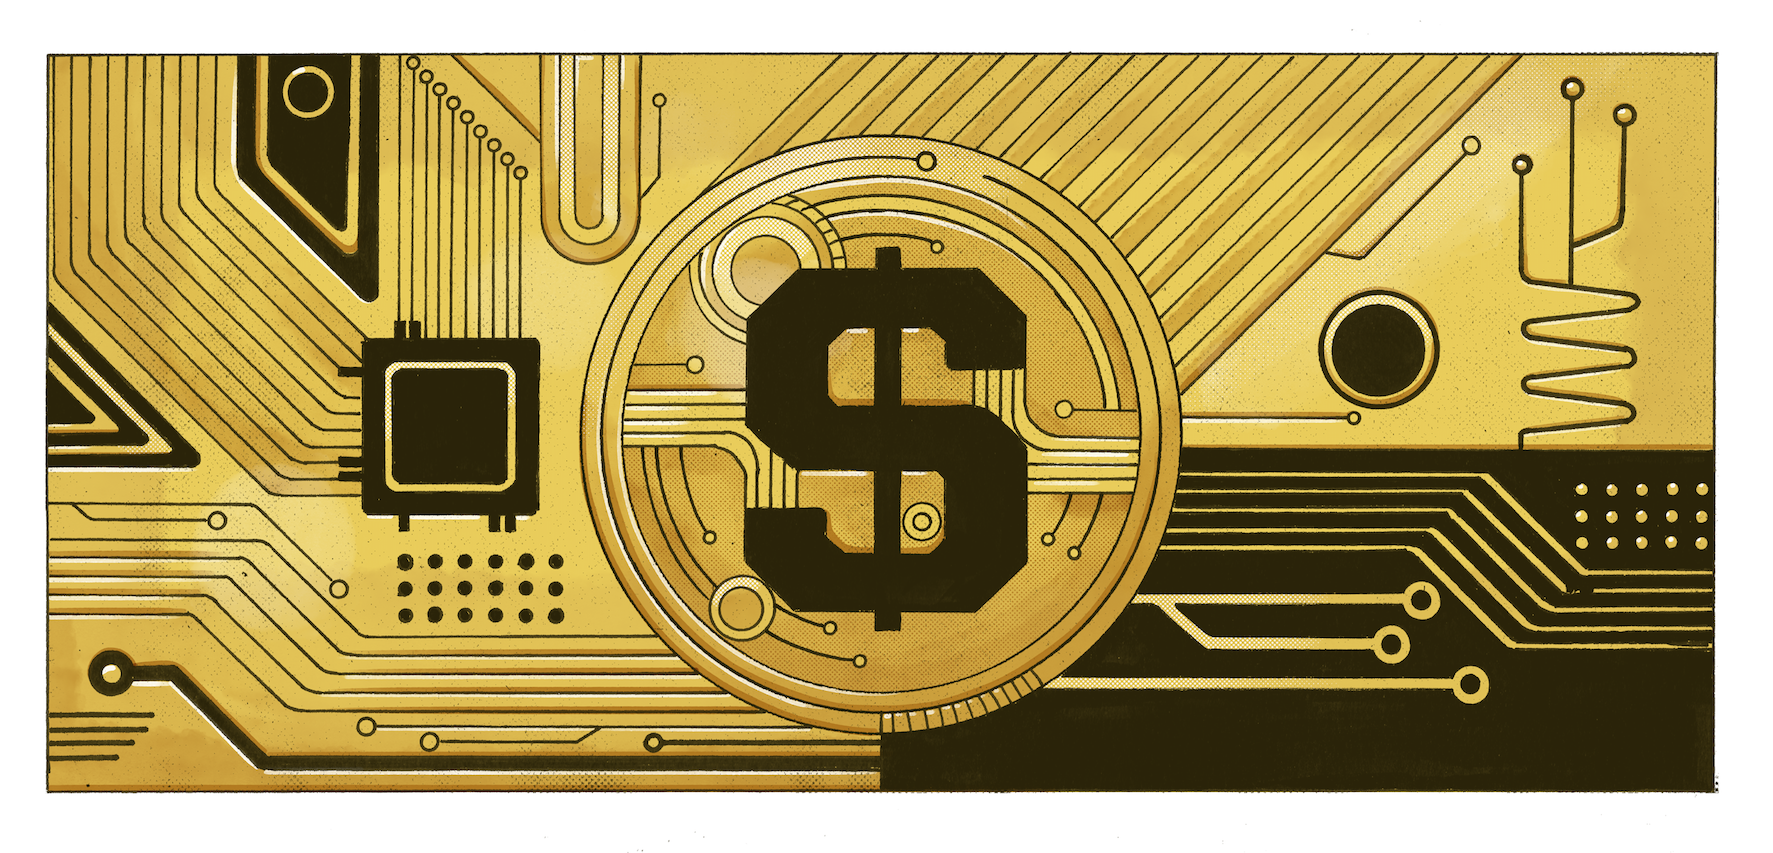 Bitcoins business money currency cryptocurrency bitcoin ink illustration